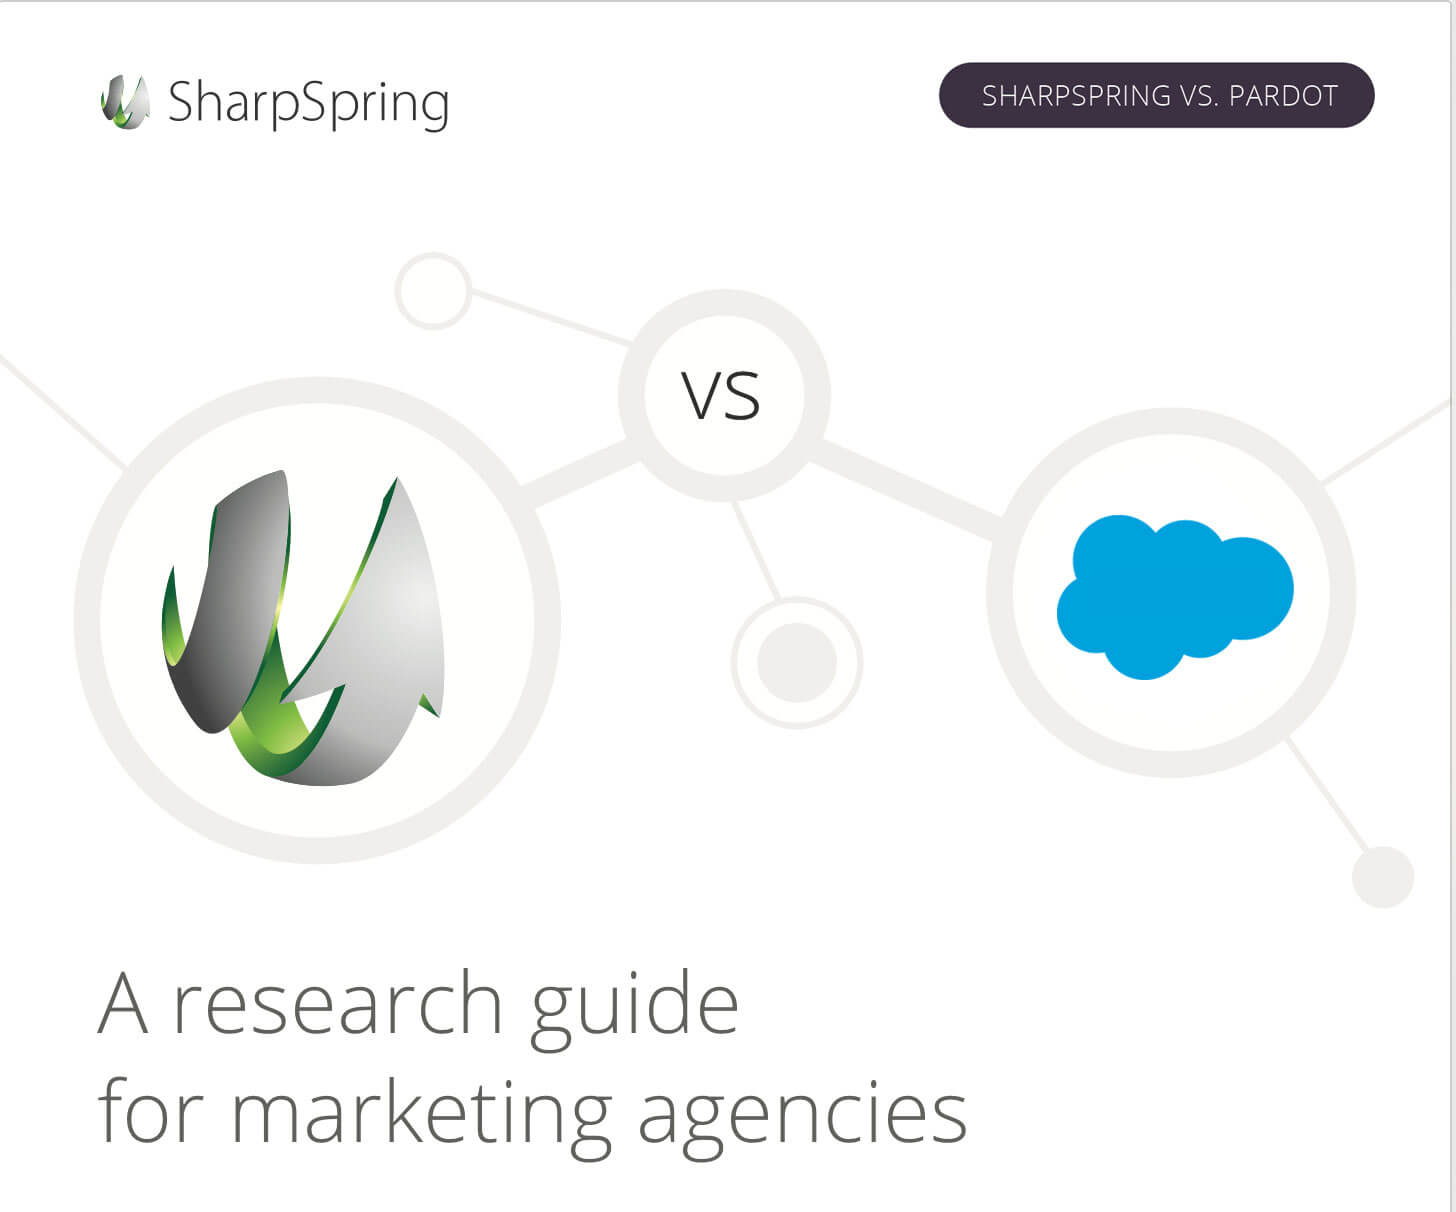 Pardot vs. SharpSpring research guide